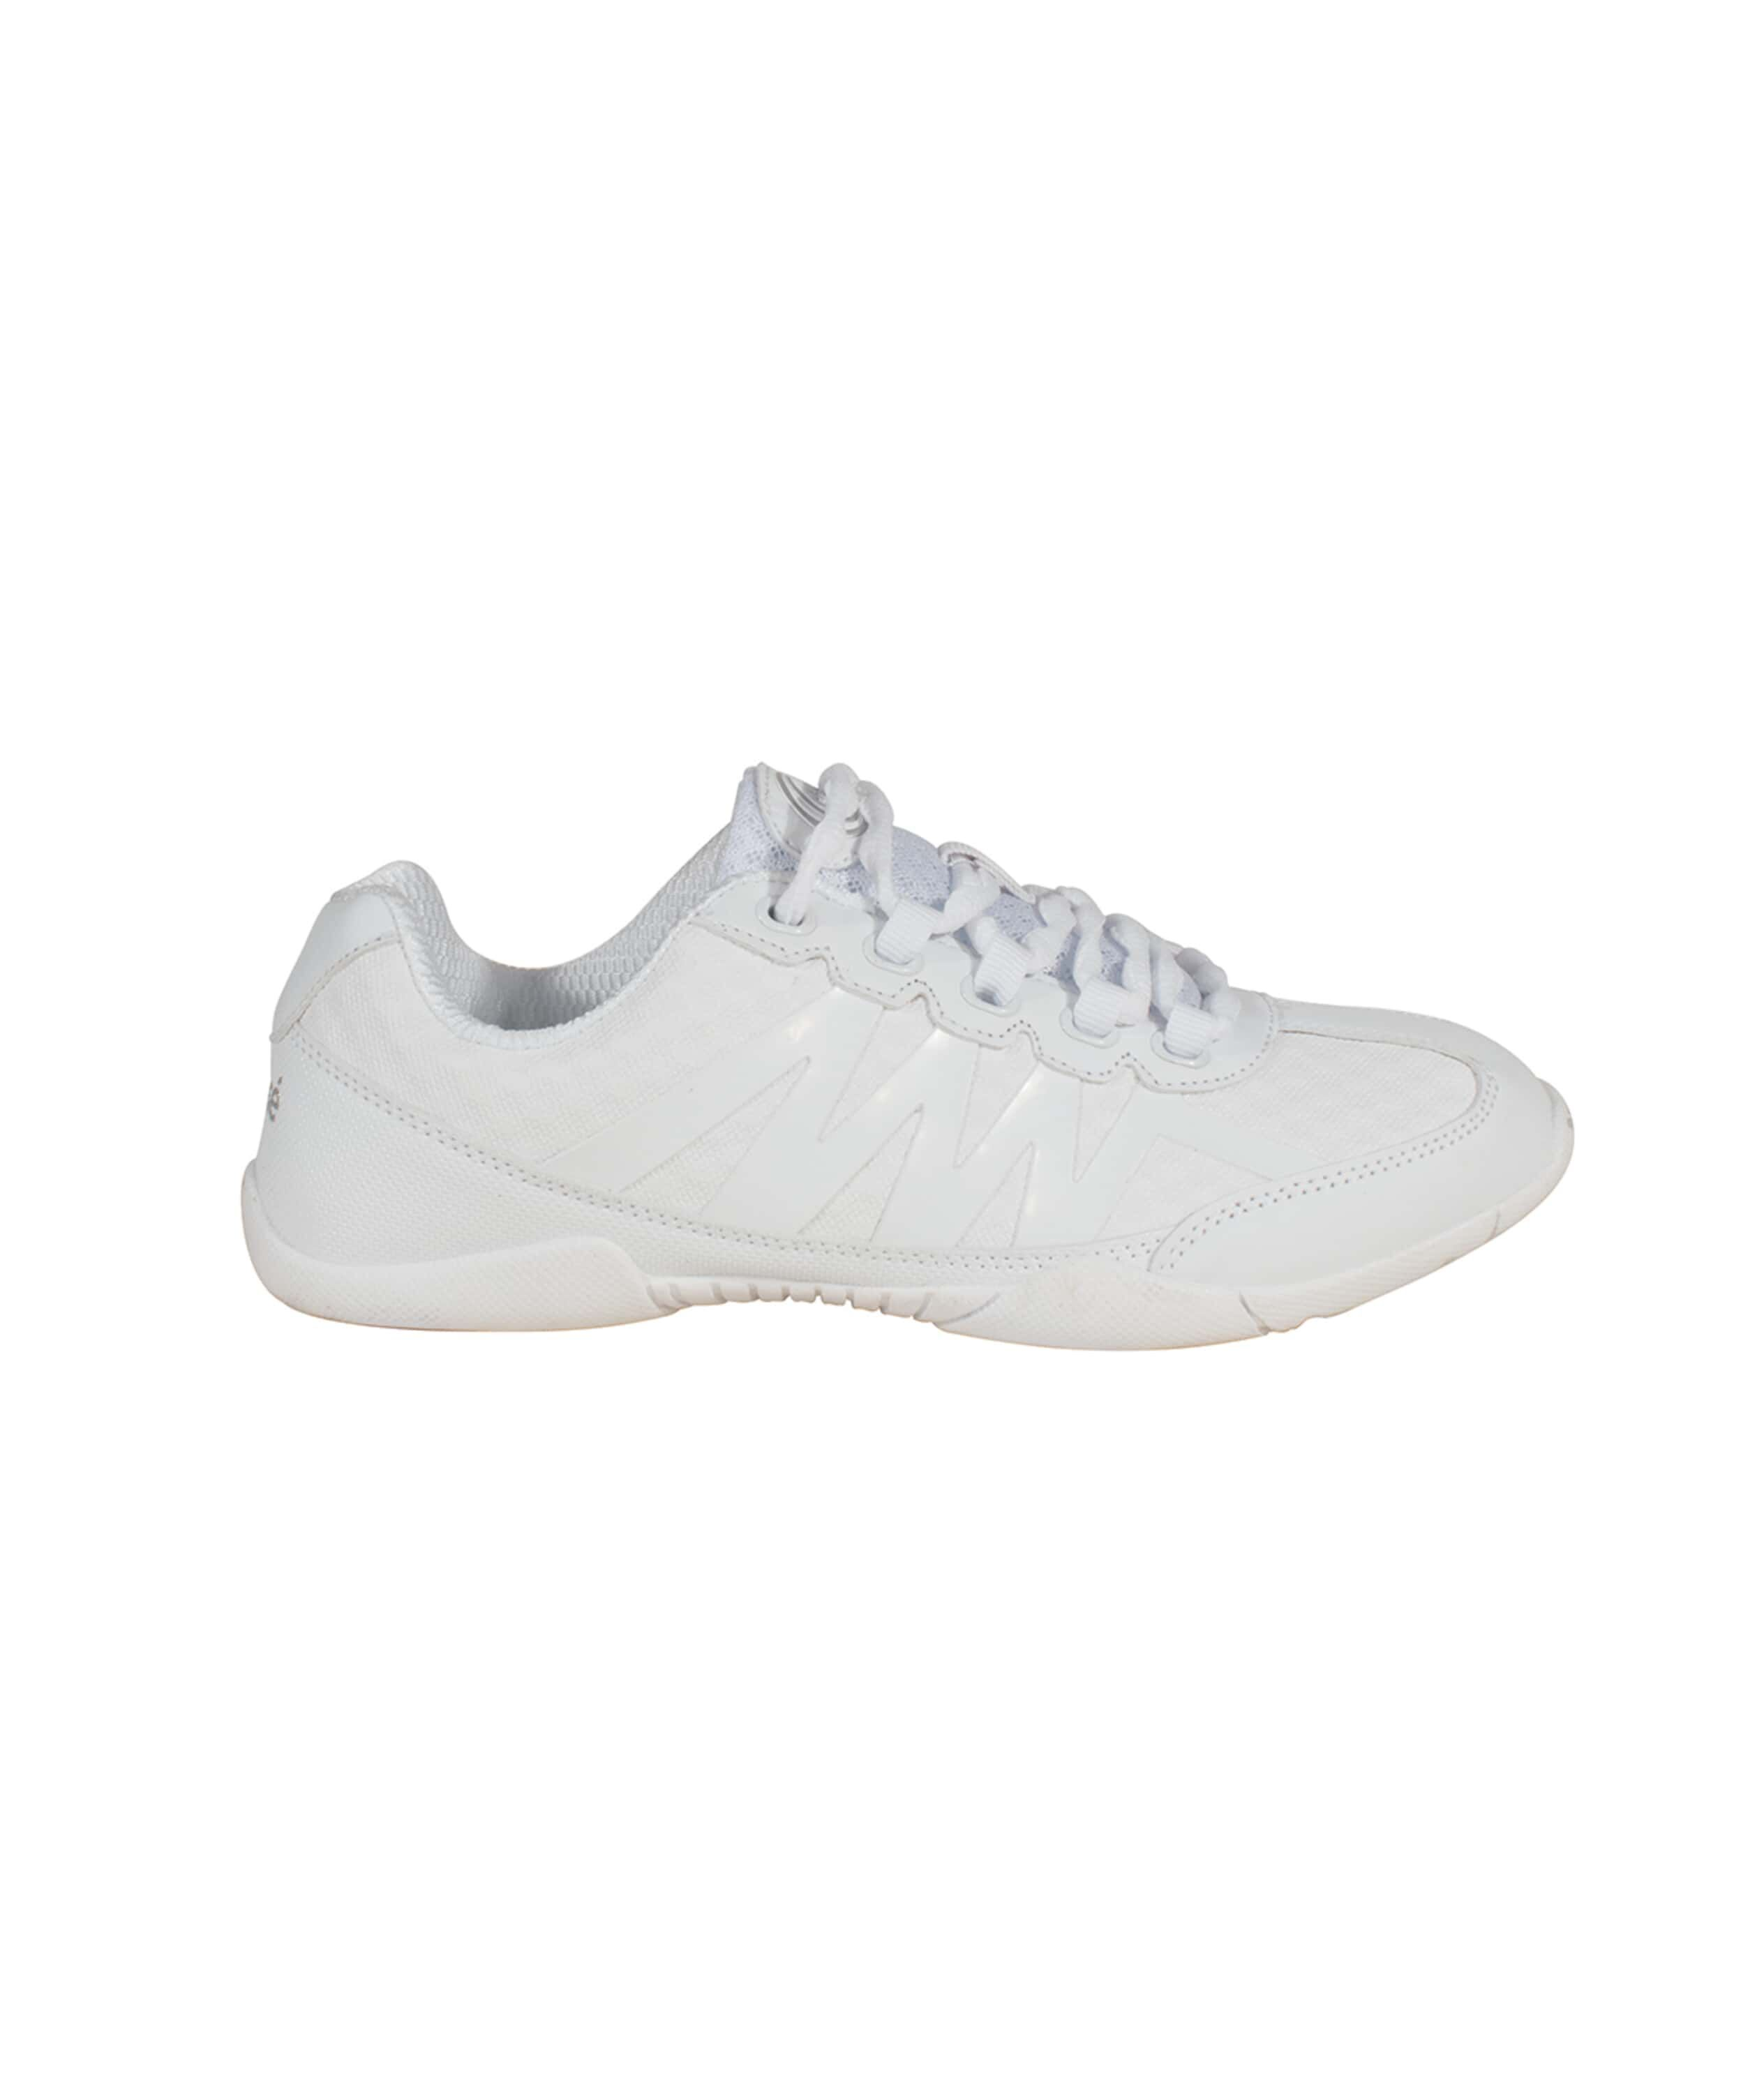 Cheerleading shoes, Apex shoes, Cheer shoes